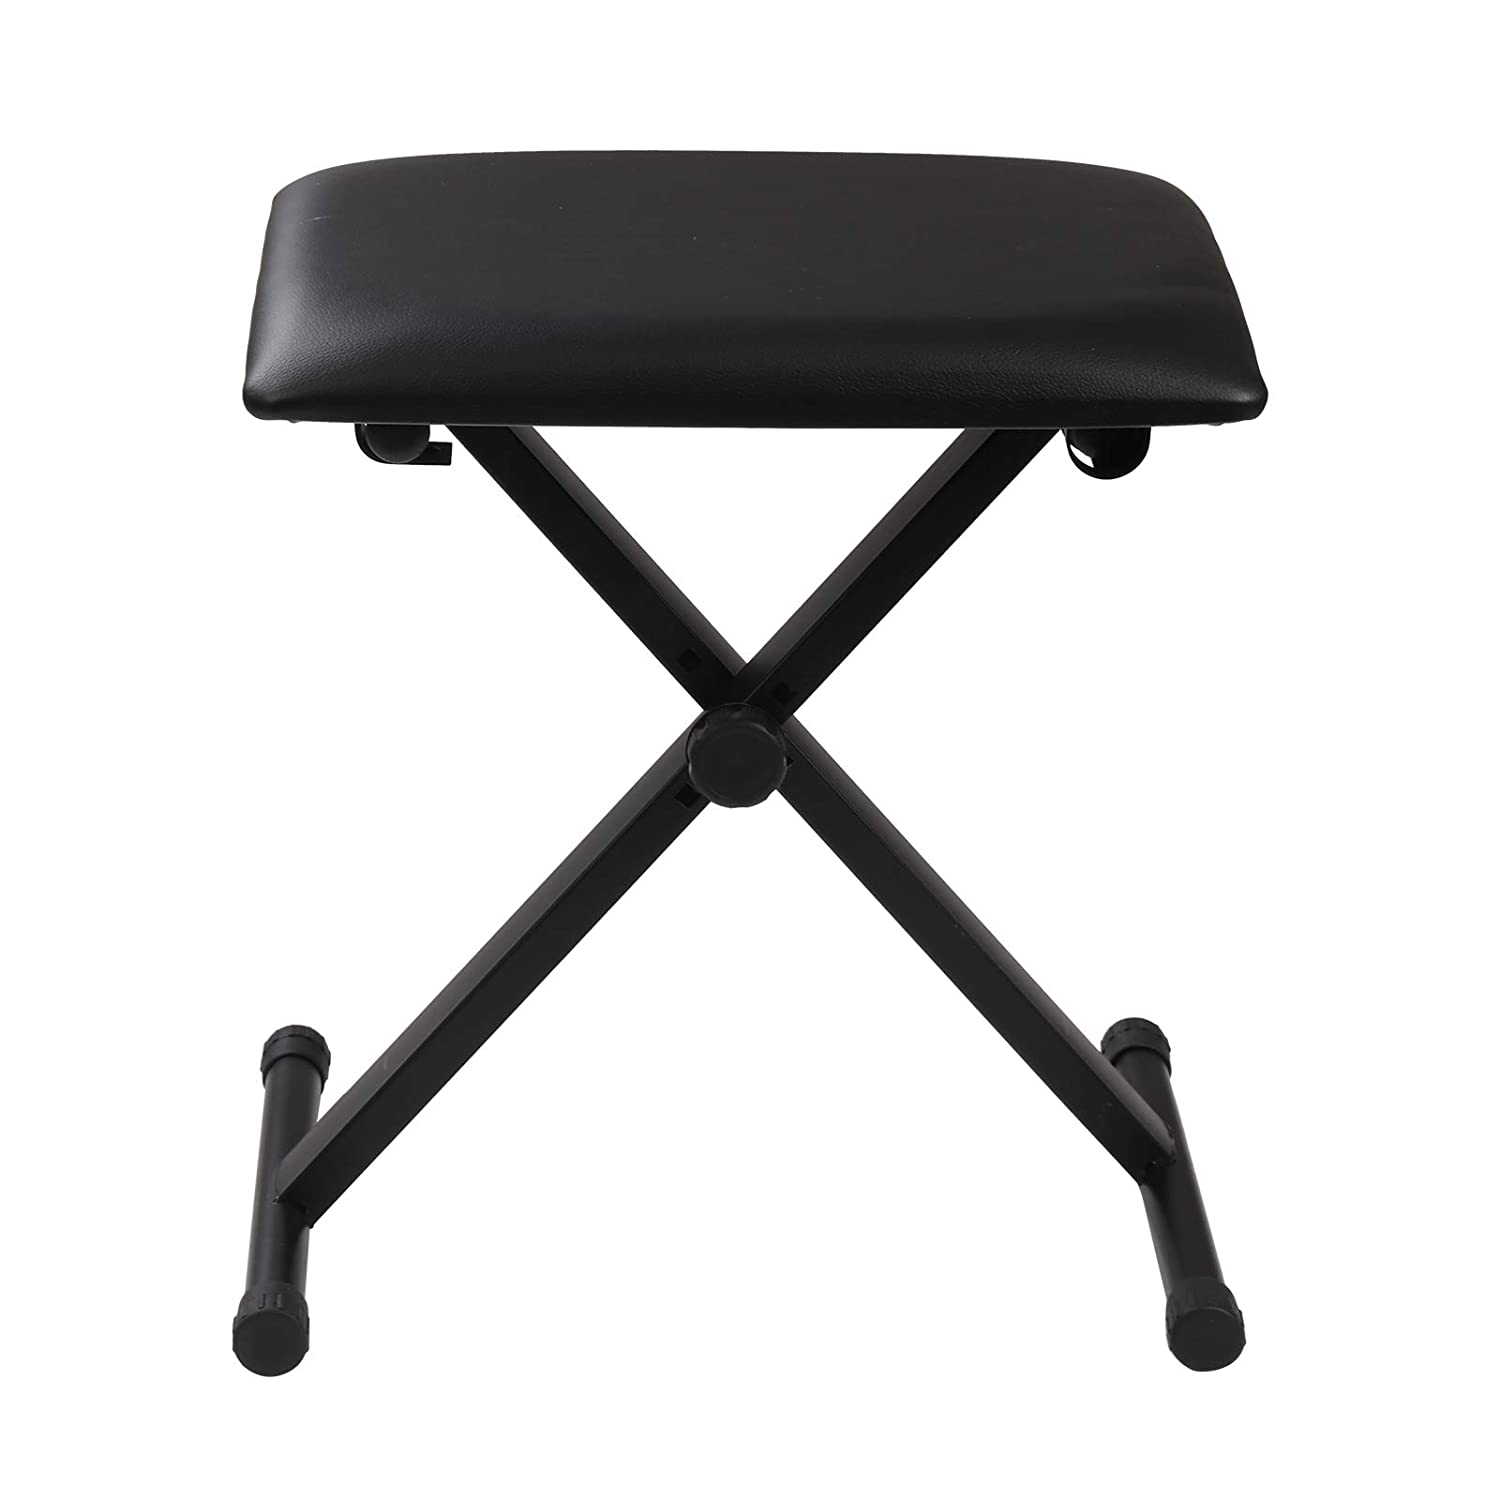 KingSaid Height Adjustable Piano Stool Keyboard Bench Seat Folding X-Frame Stool with 3-Position Height